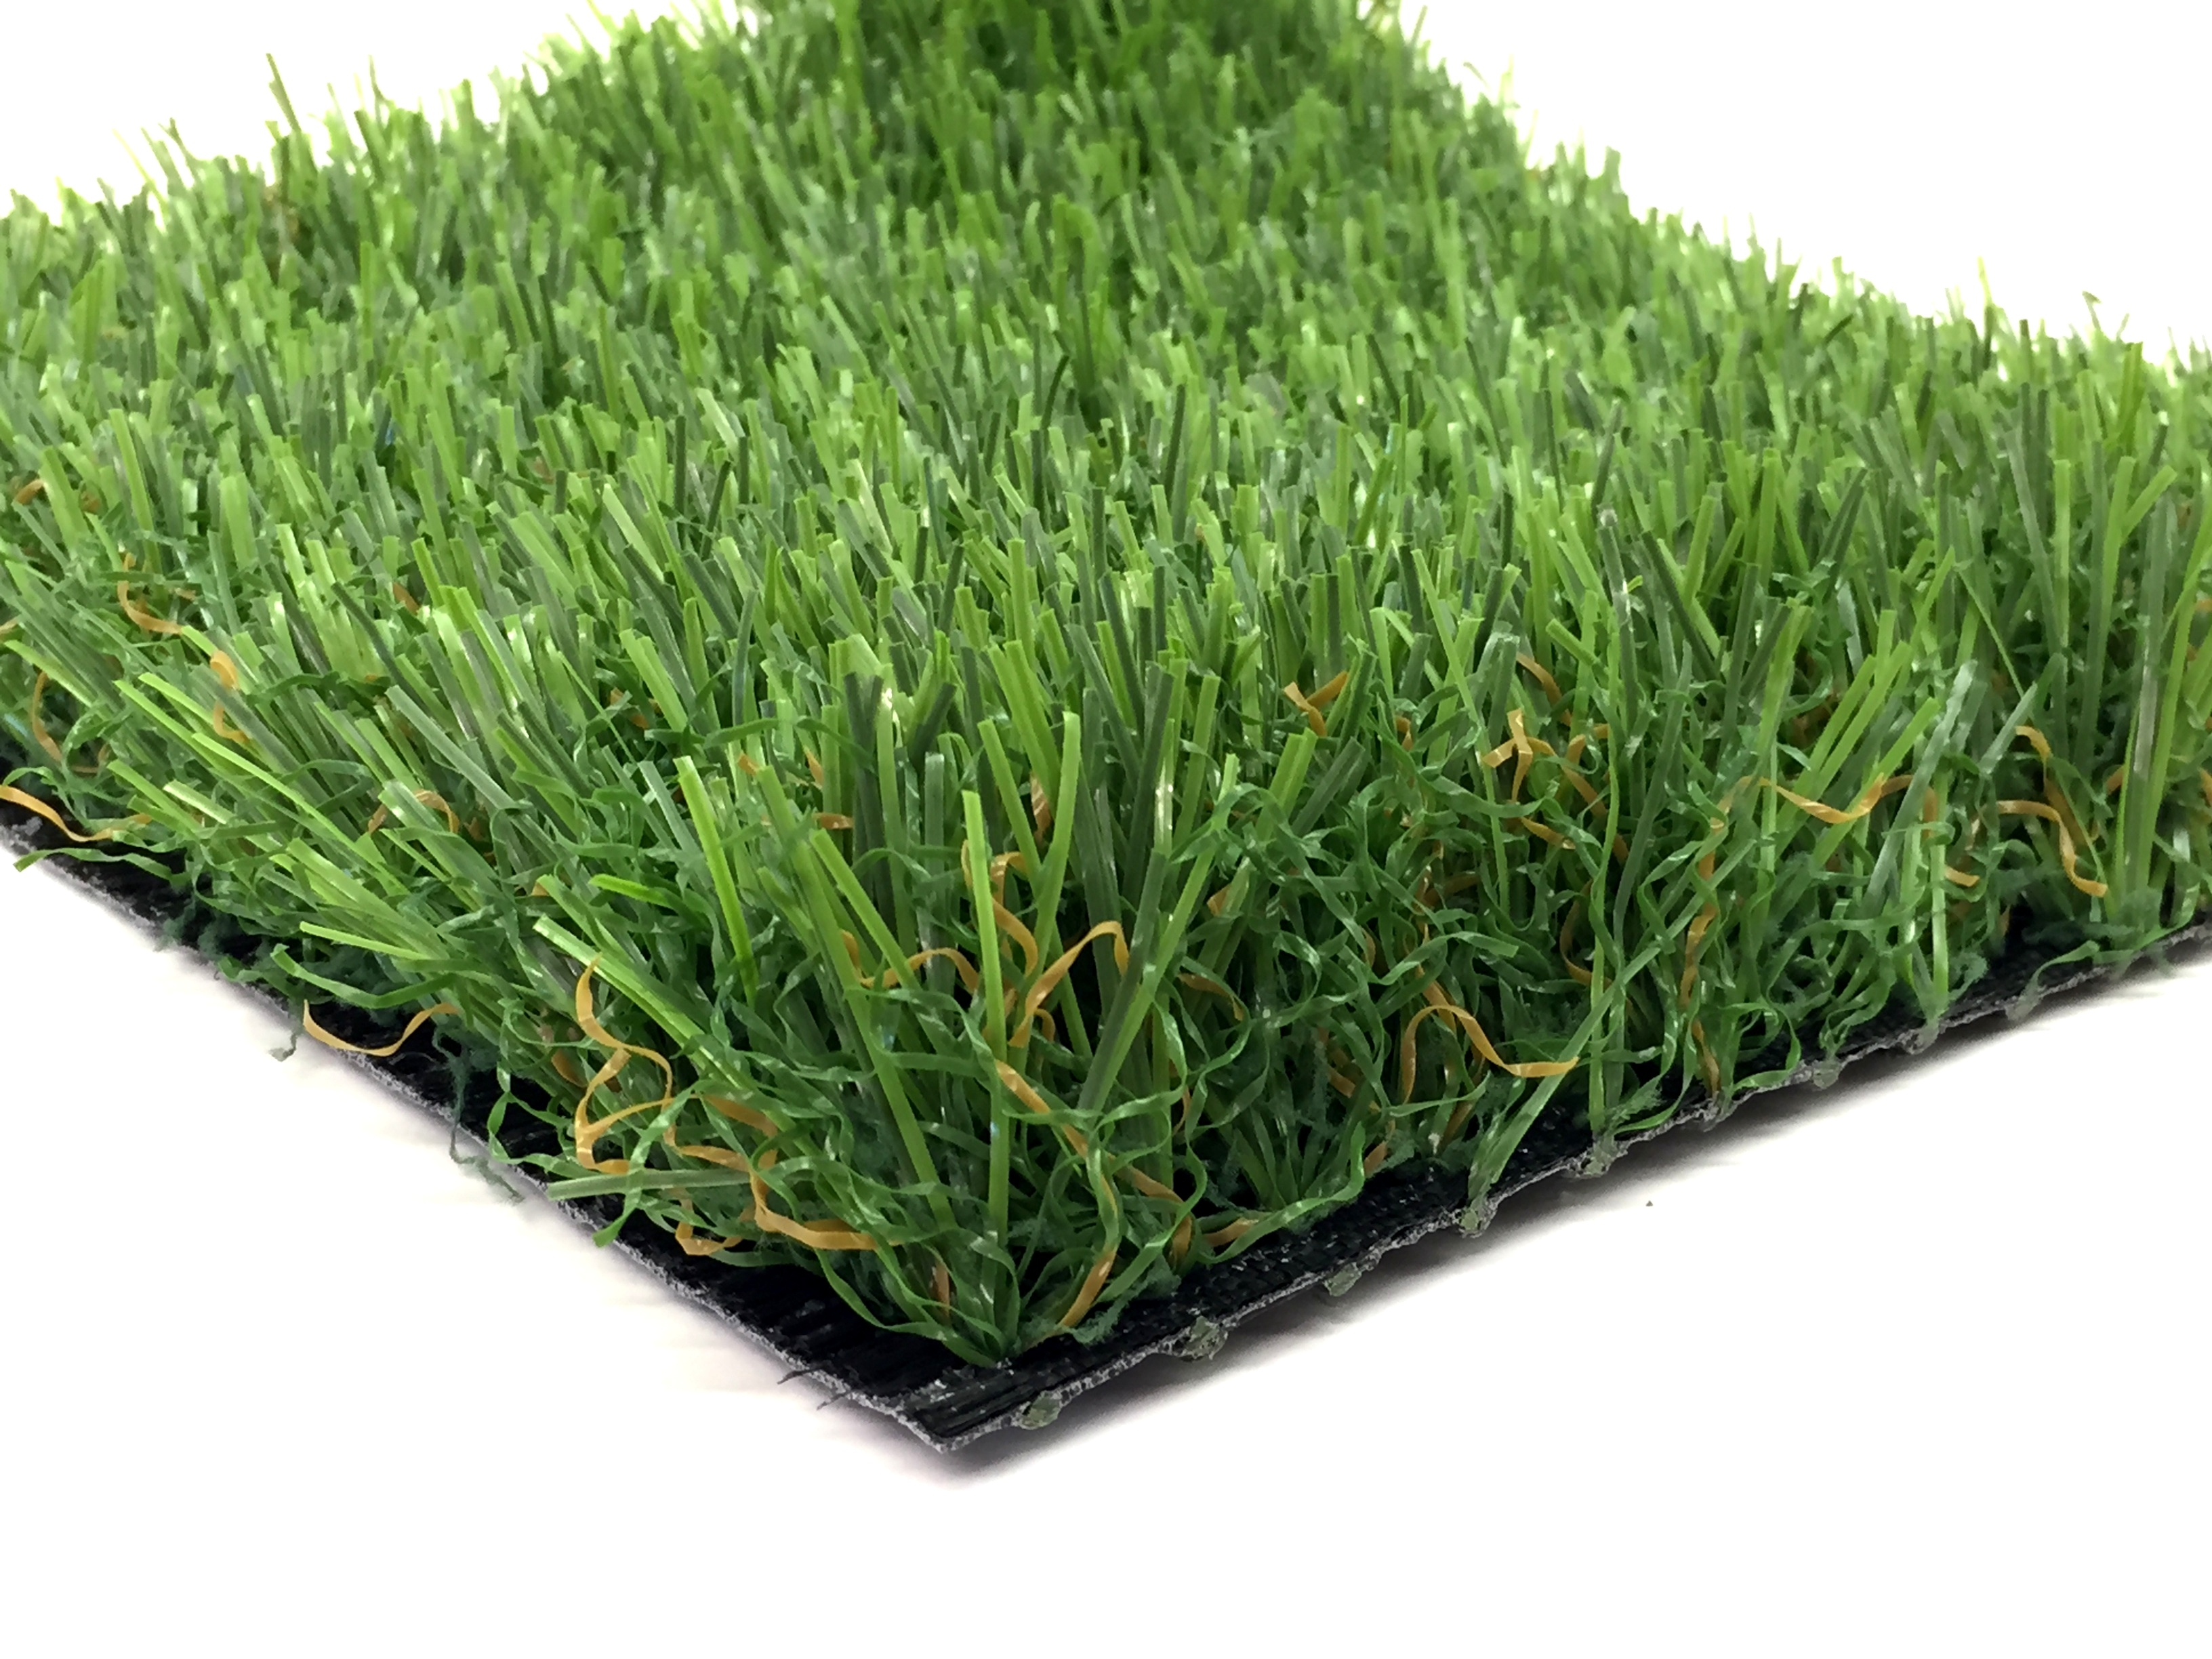 Artificial Turf Supply Coupons Near Me In Chino Ca 91710